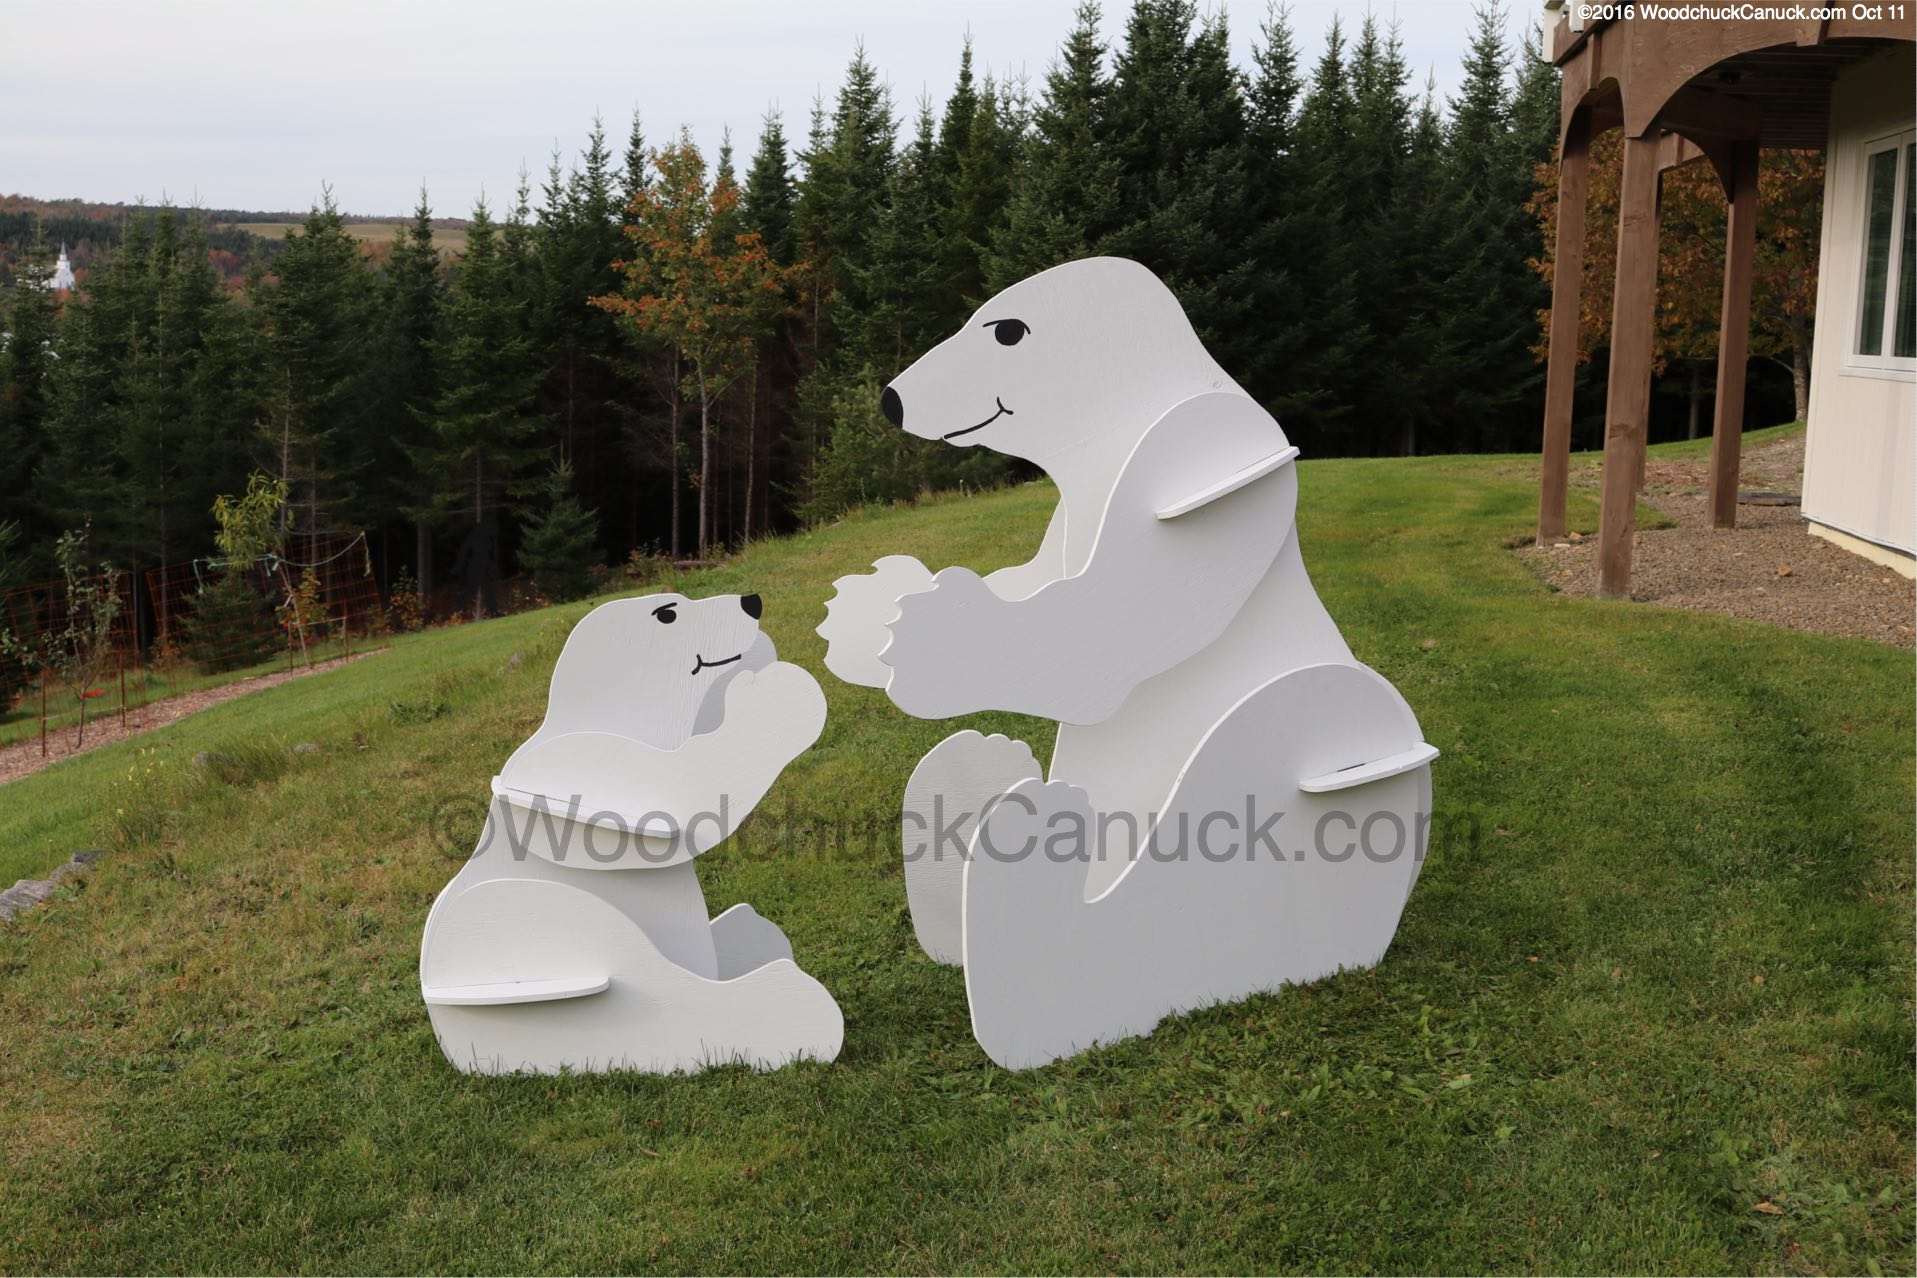 3d Momma And Baby Polar Bears Woodchuckcanuck Com